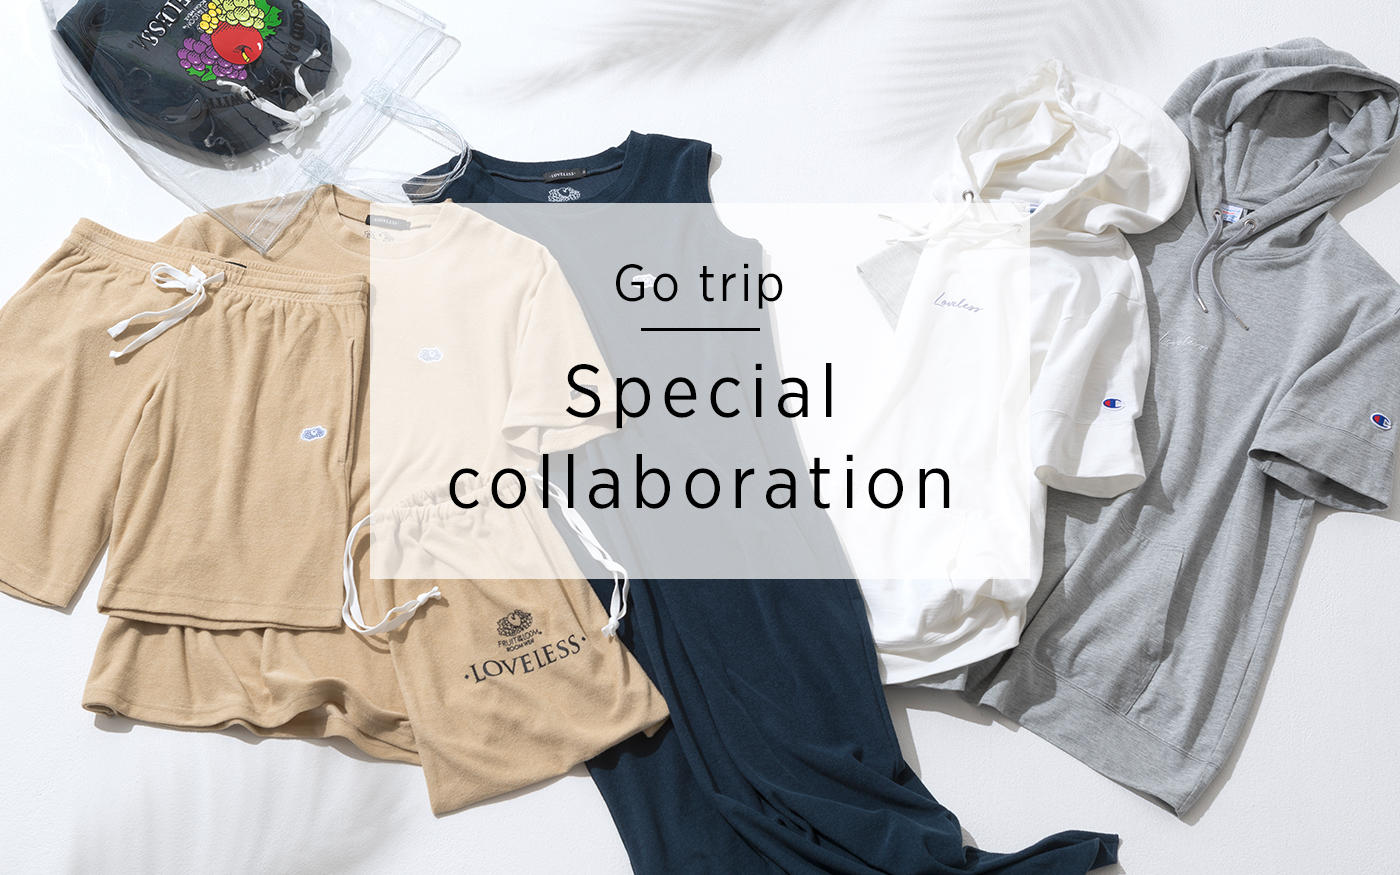 Go trip - Special collaboration